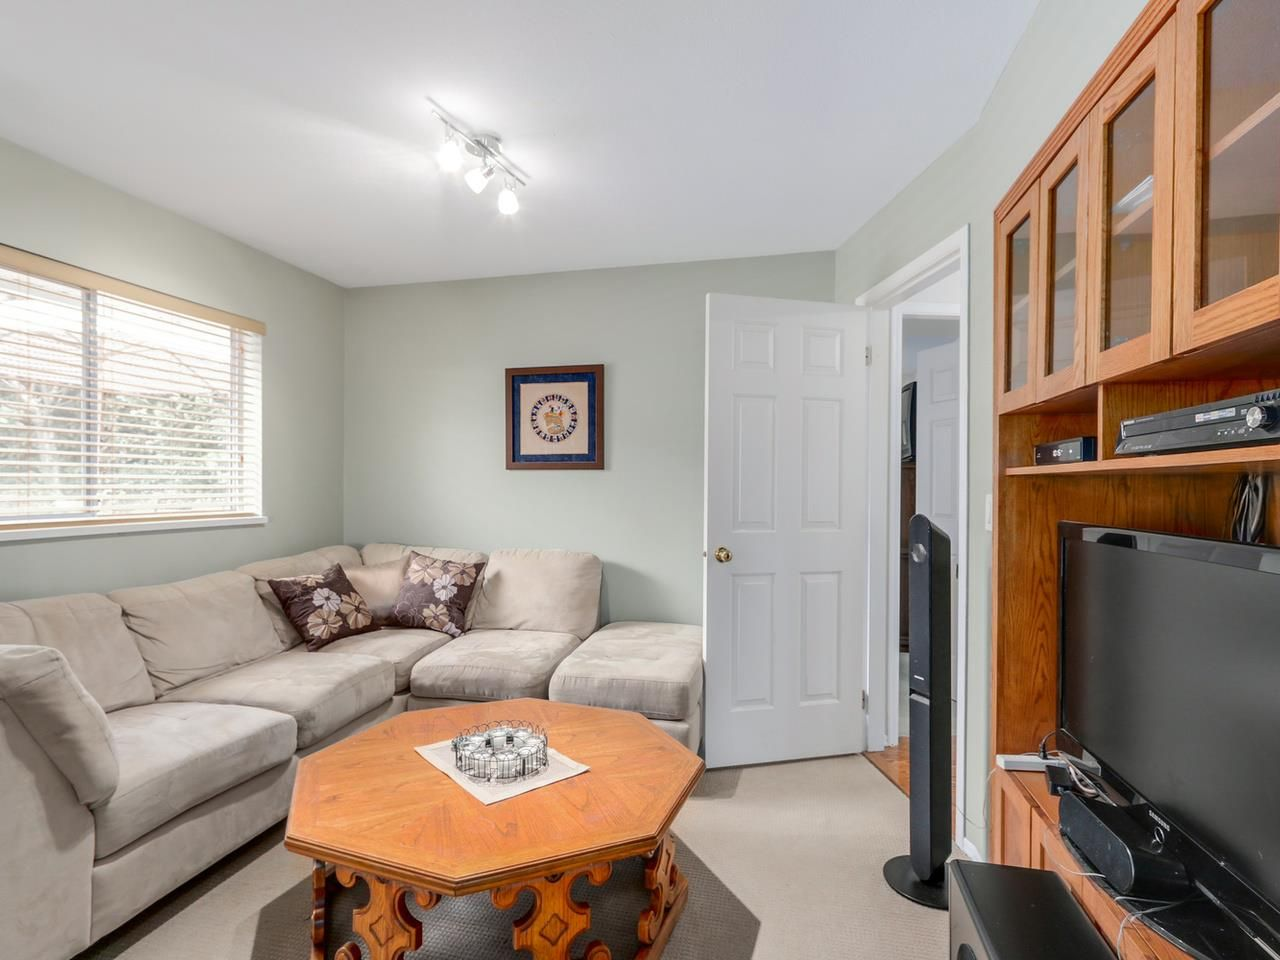 """Photo 5: Photos: 2559 BLUEBELL Avenue in Coquitlam: Summitt View House for sale in """"SUMMITT VIEW"""" : MLS®# R2064204"""